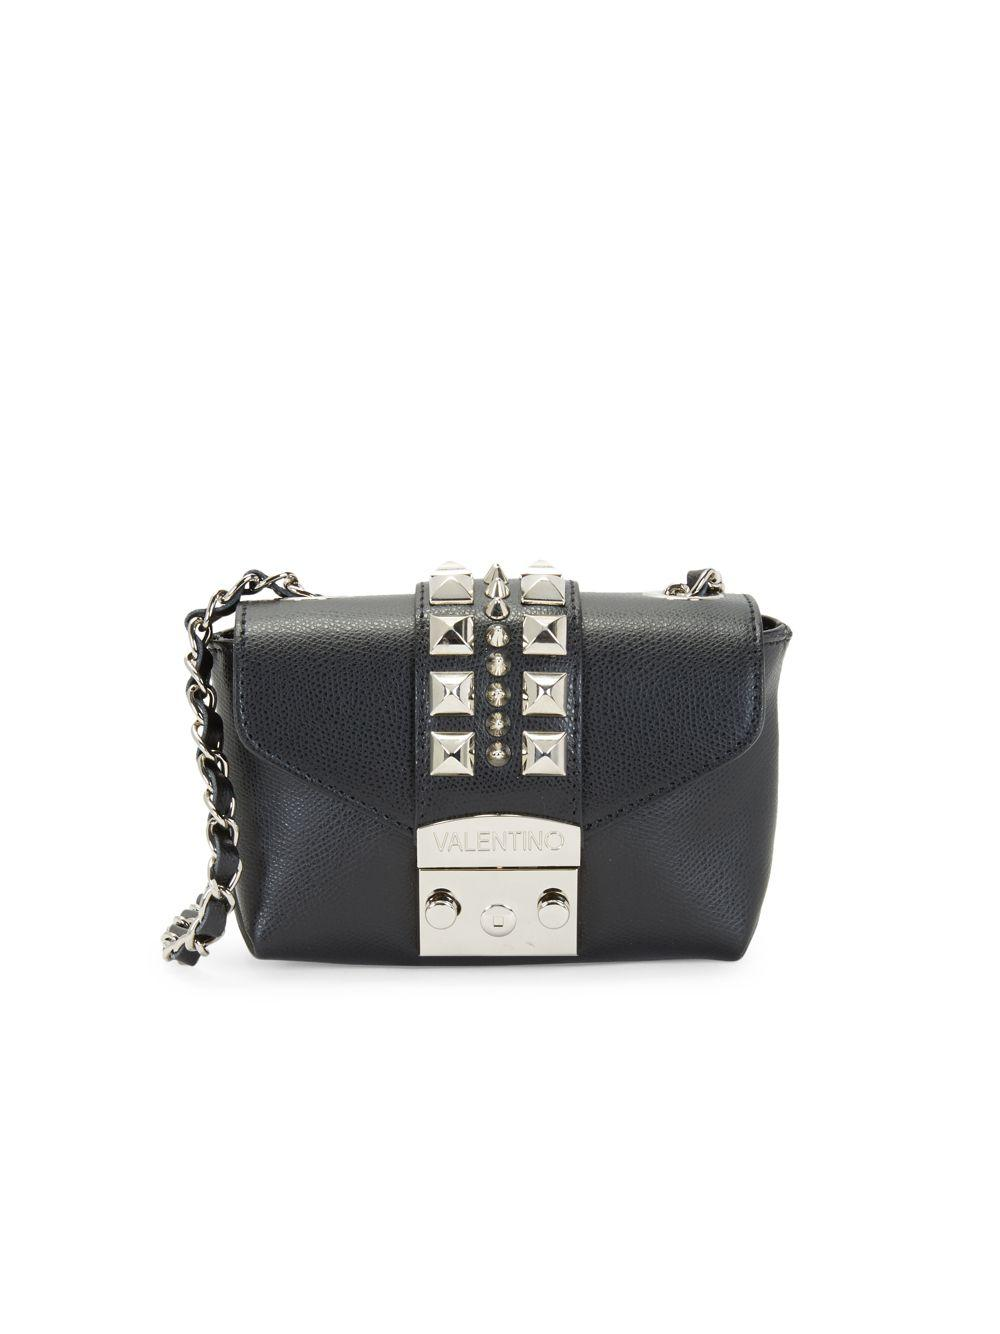 ad418f7c846 Valentino By Mario Valentino. Women's Black Paulette Studded Crossbody Bag